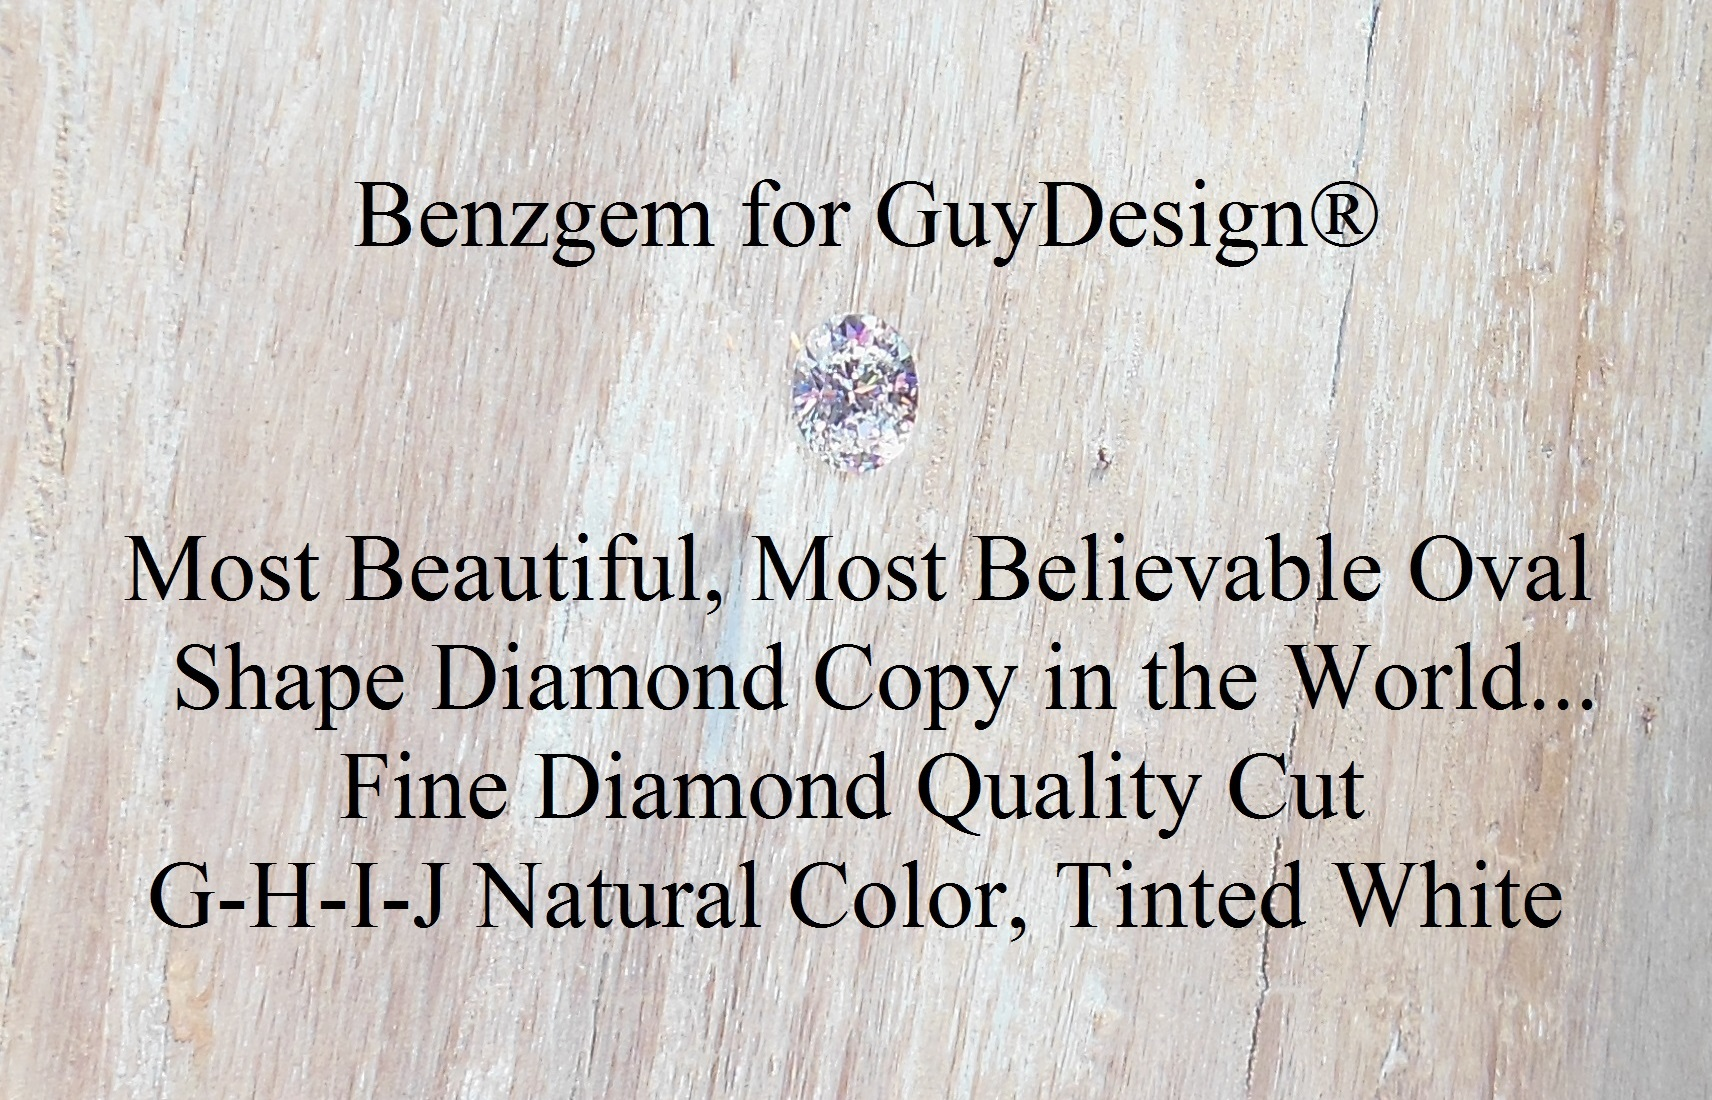 most-beautiful-most-believable-diamond-copy-oval-shape-in-the-world-benzgem-for-guydesign-.jpg